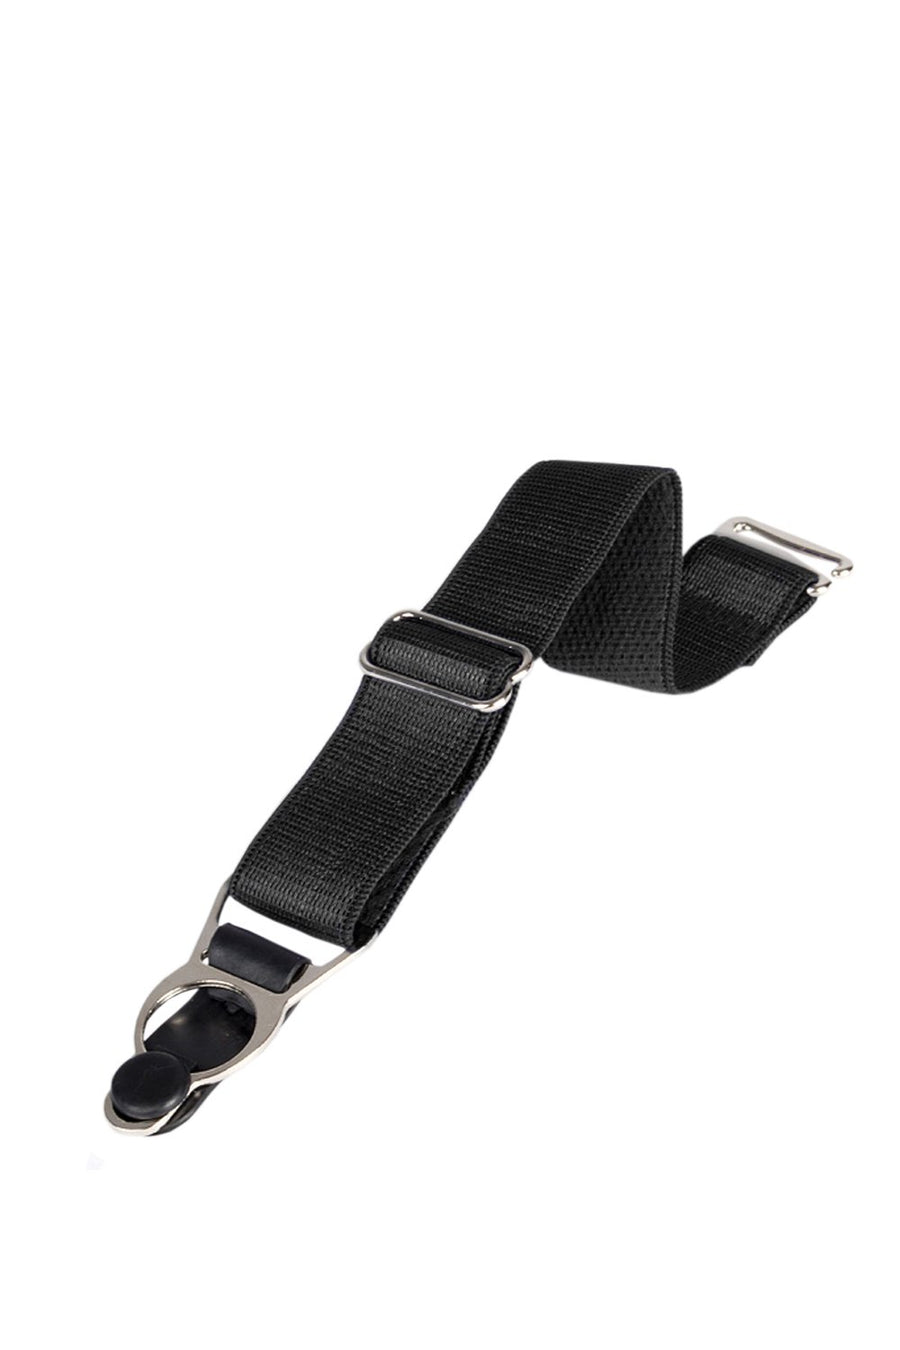 6 x Steel Suspender Clips In Black